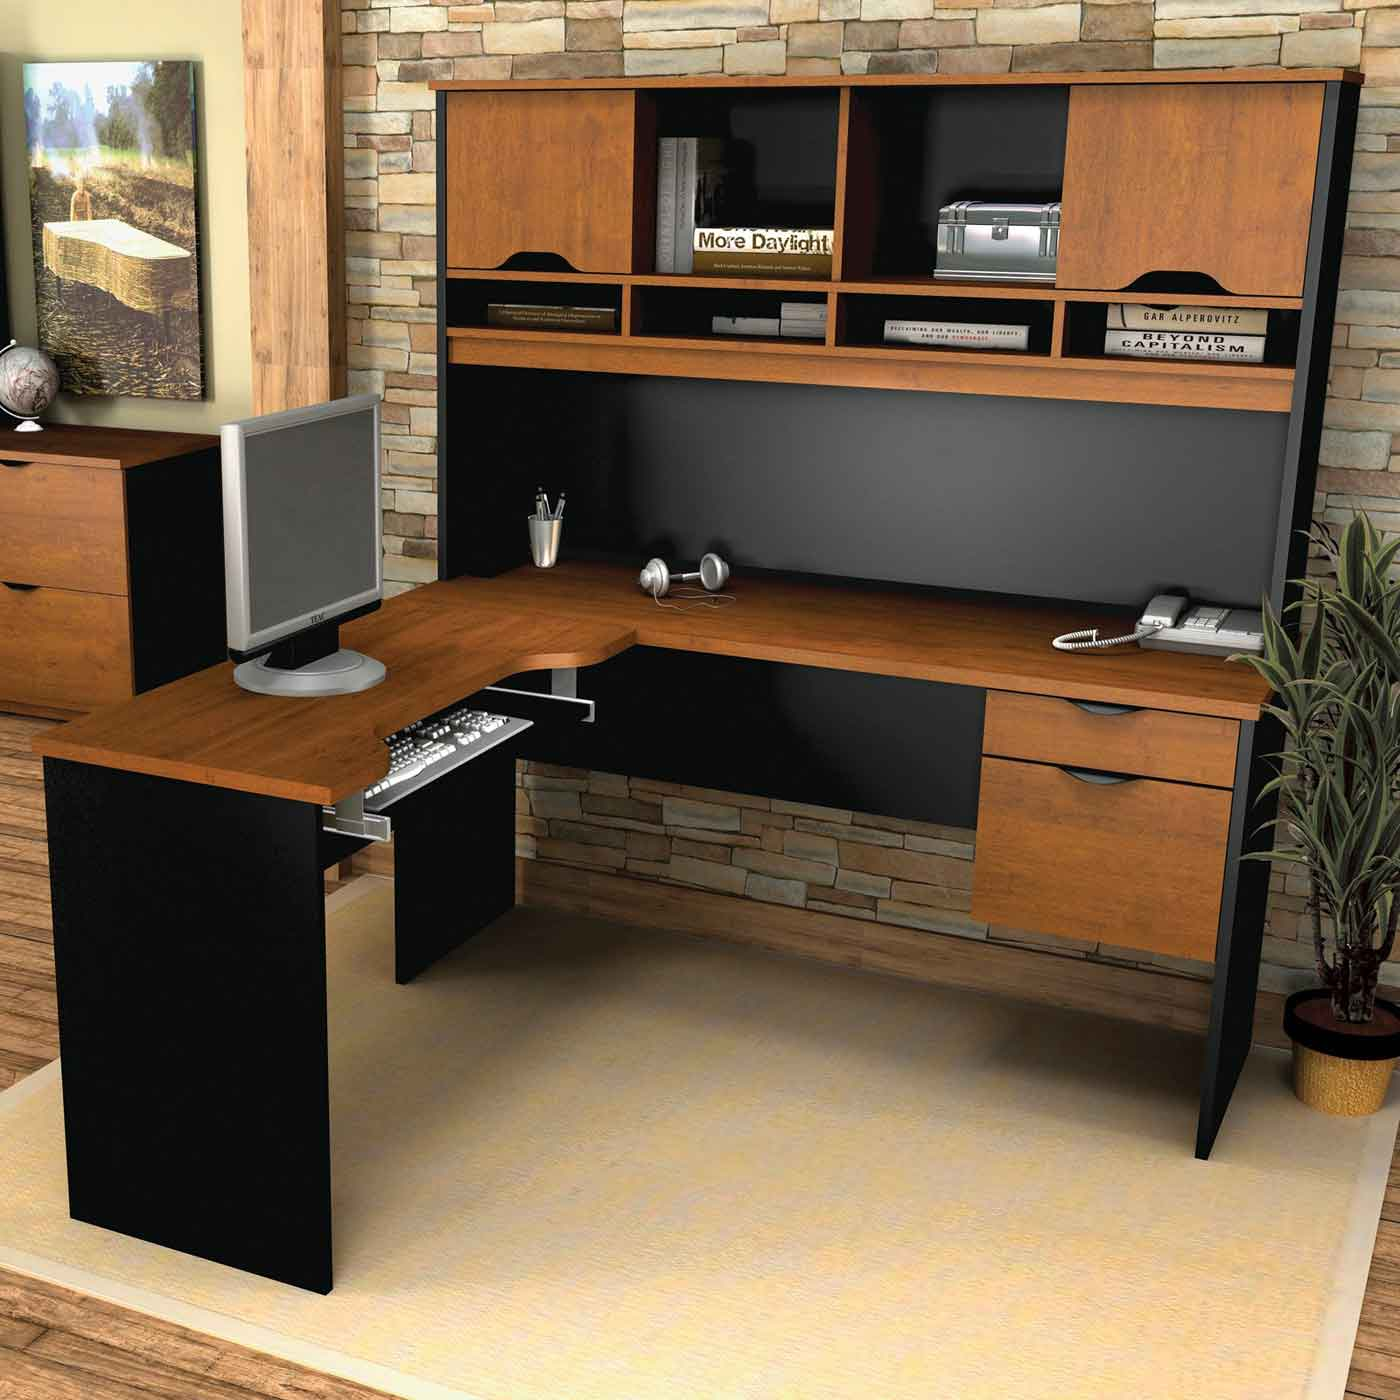 Furniture Stunning L Shaped Desk With Hutch For Office Or Home - Cheap office decorating ideas